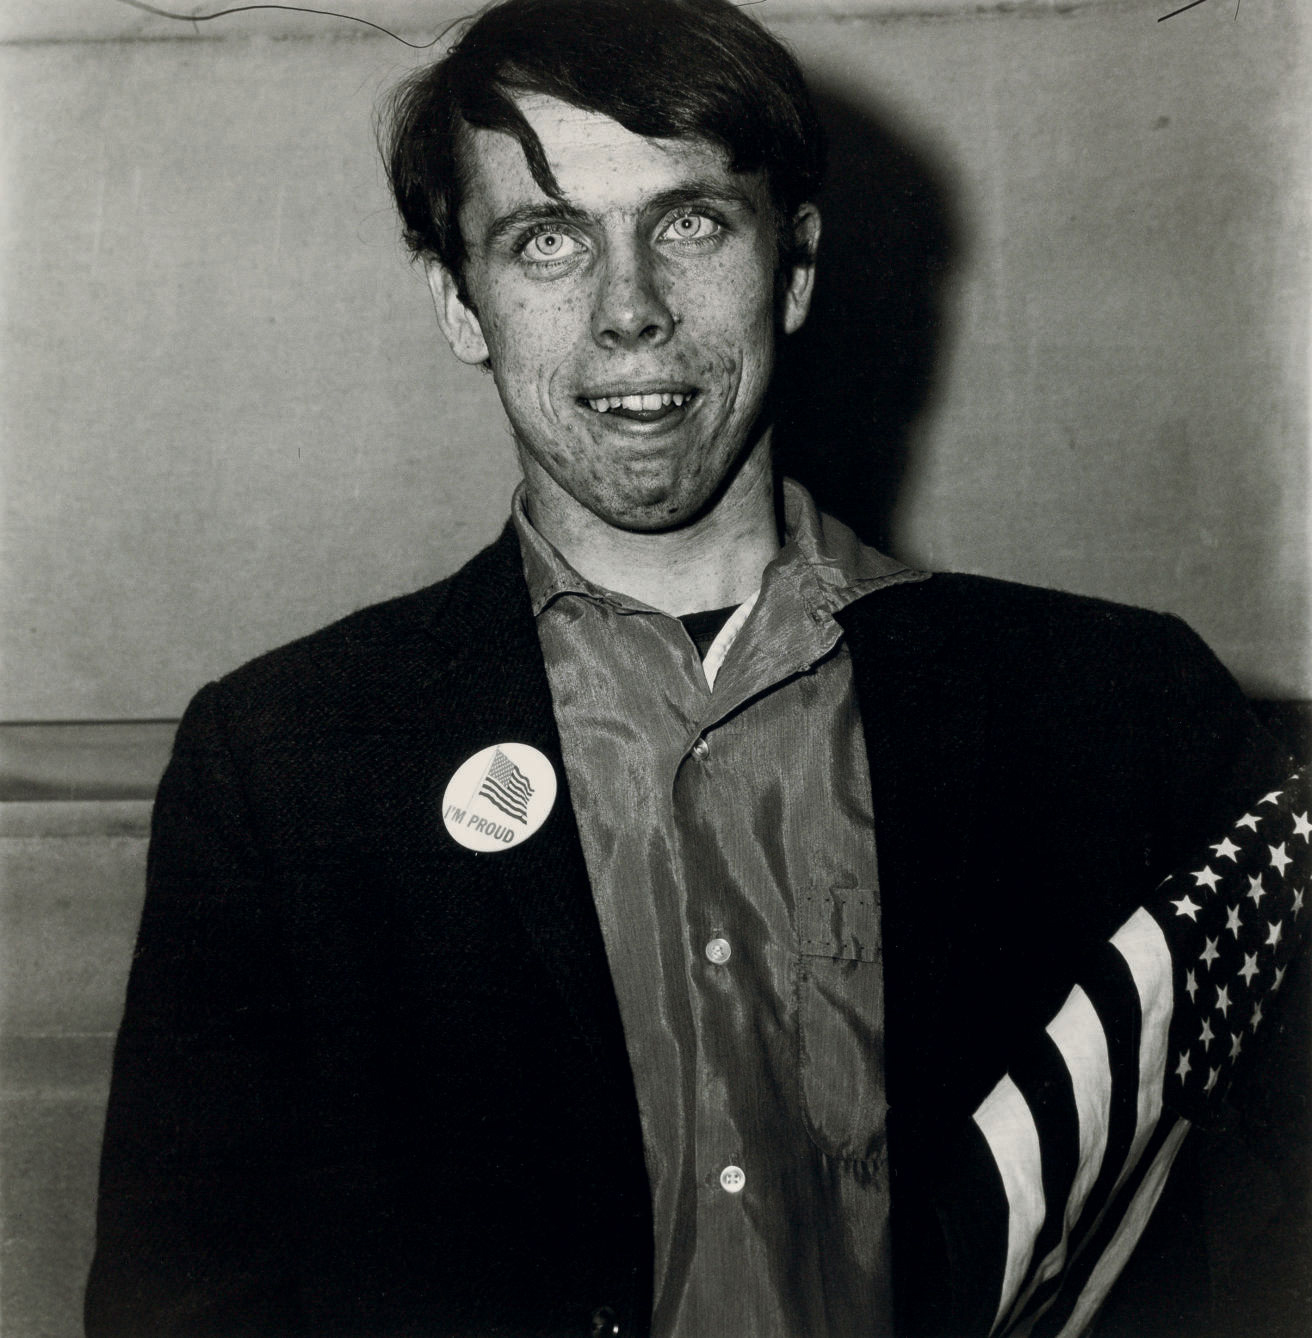 "©1968 estate of Diane Arbus, LLC, Patriotic Young Man with a Flag, N.Y.C. 1967   ""What I'm trying to describe is that it's impossible to get out of your skin into somebody else's…. That somebody else's tragedy is not the same as your own."" - Diane Arbus"